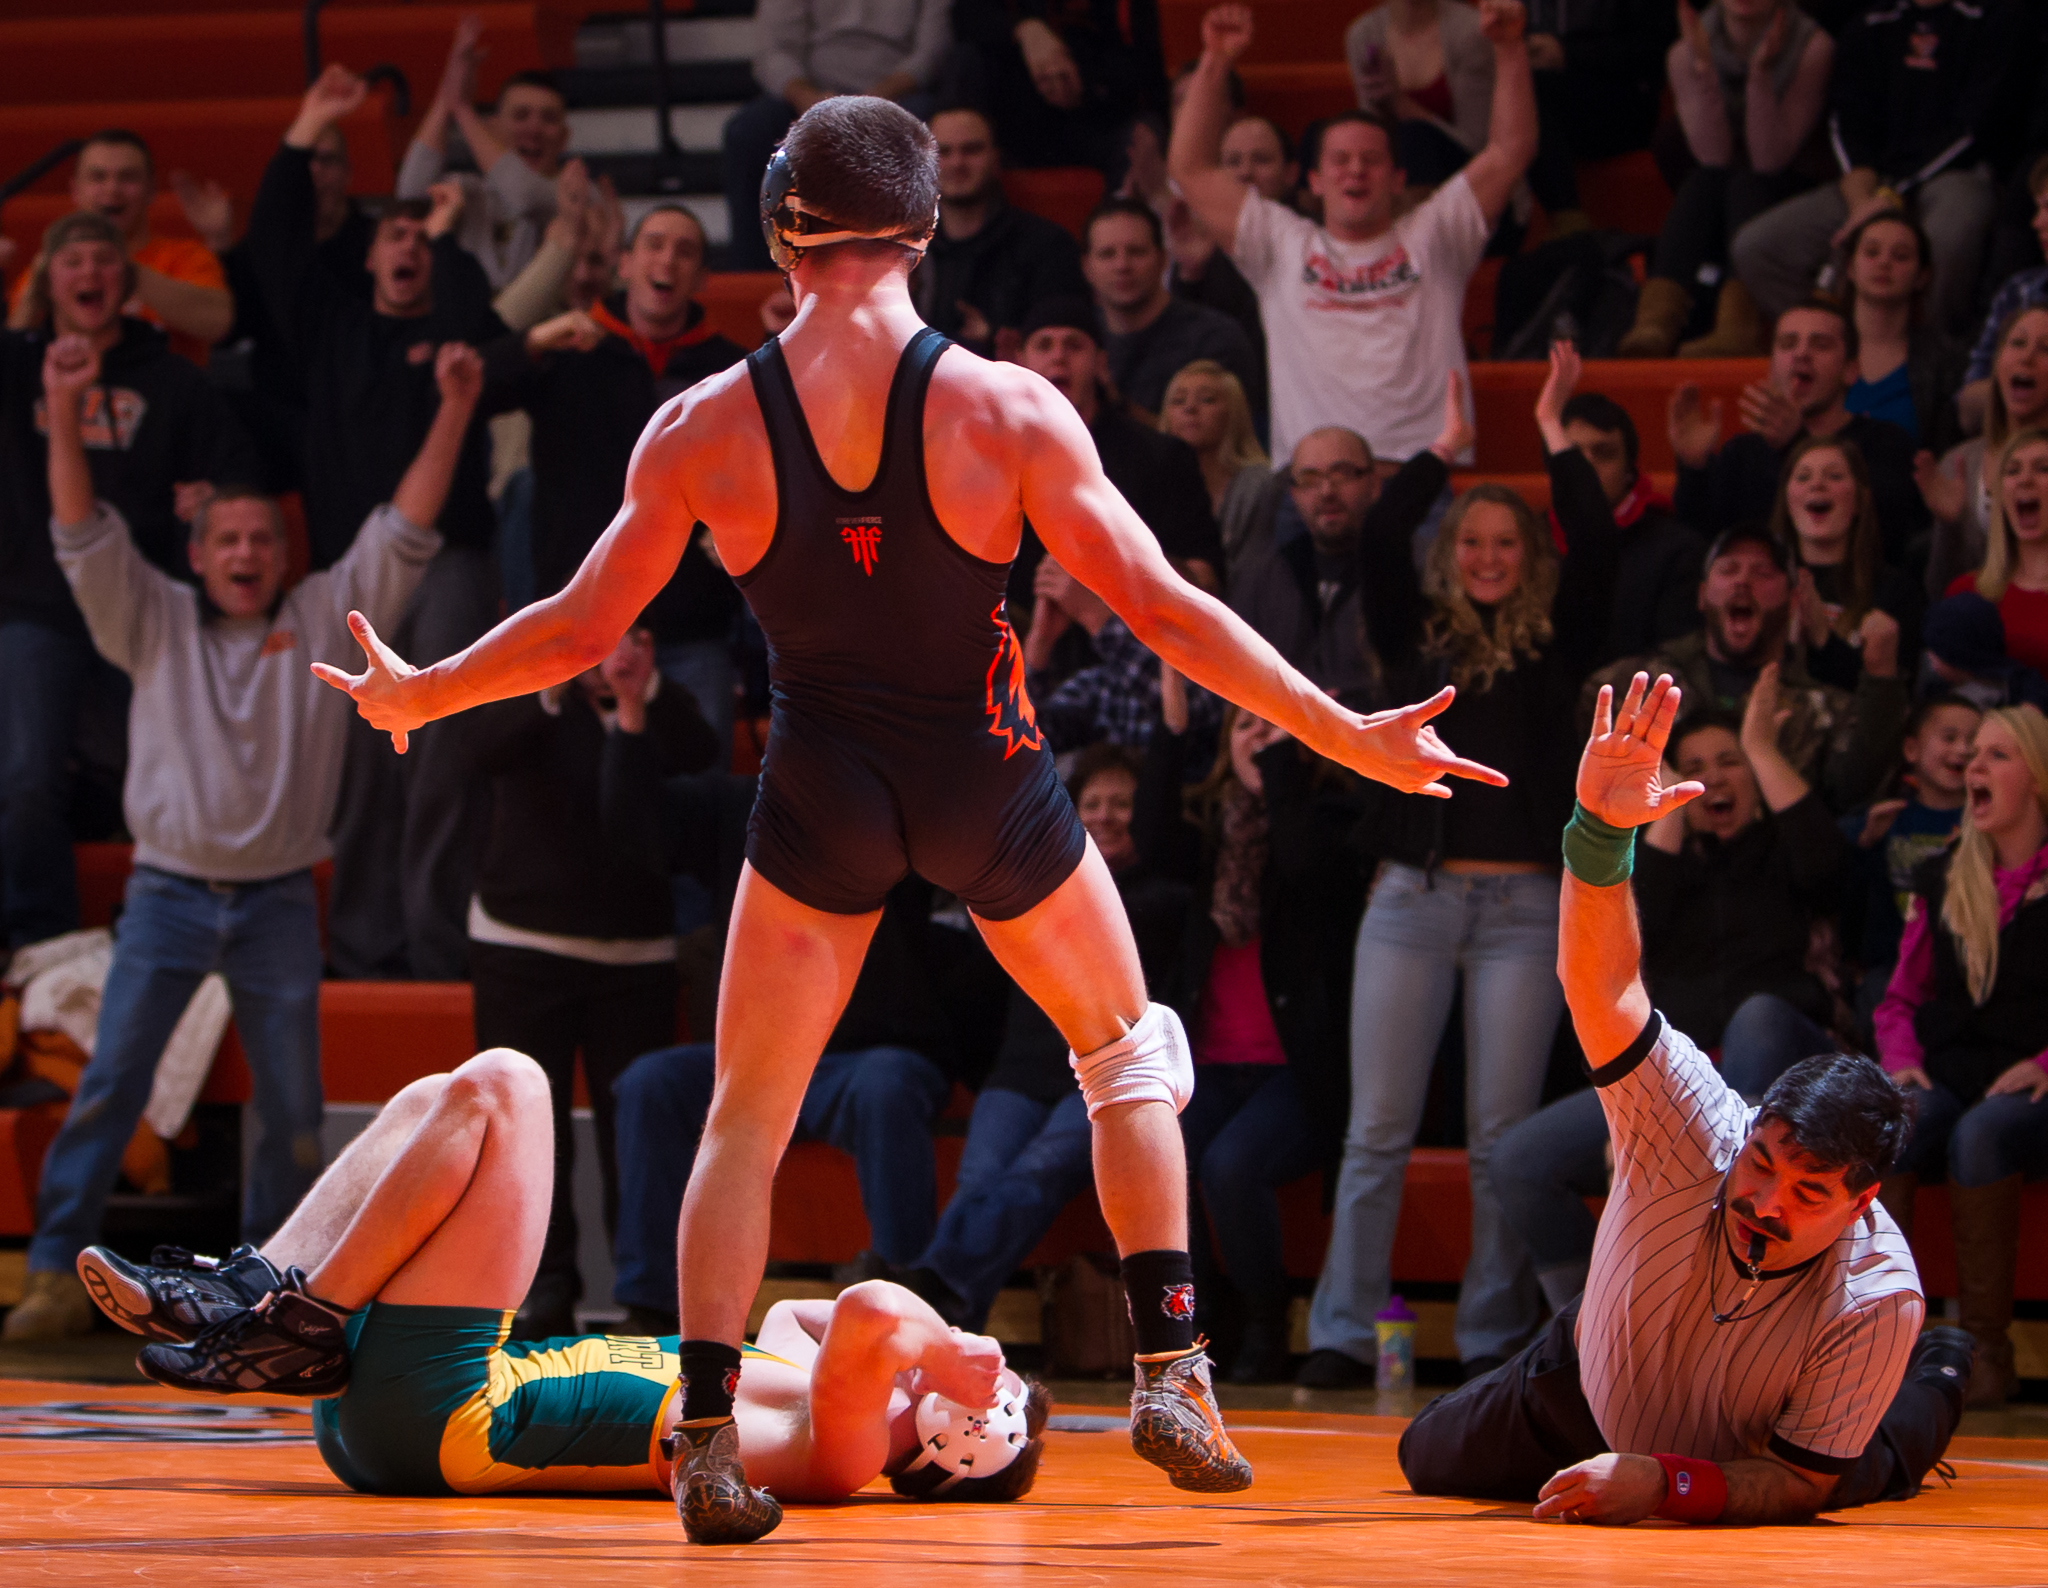 Brad Mayville (RIT) celebrates after winning the 149lb bout by pin during senior night at RIT. Mayville is a senior.